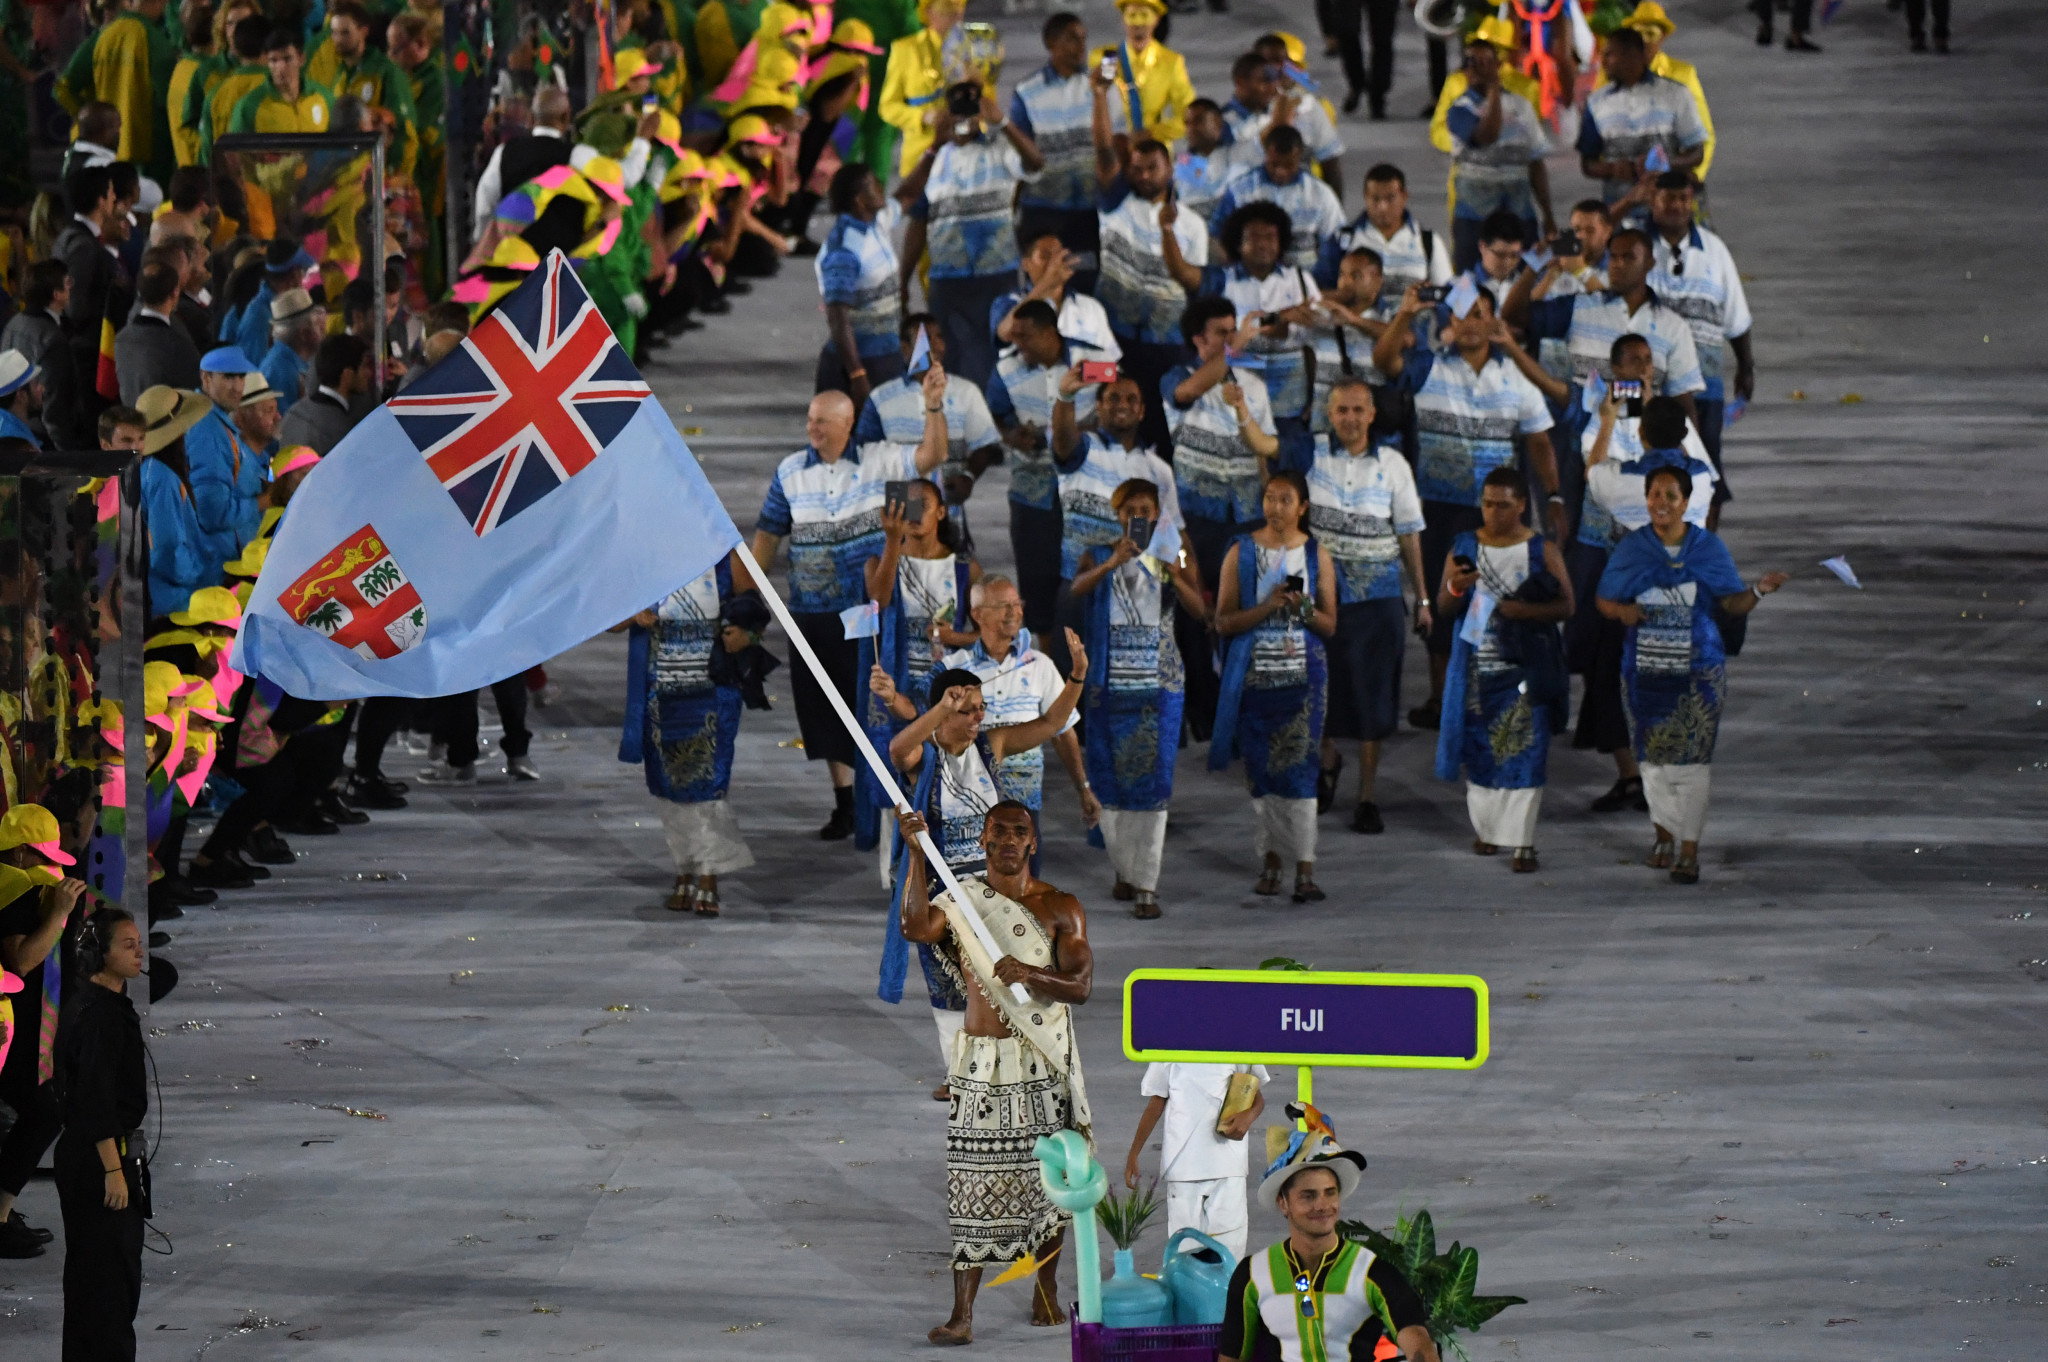 The partnership aims to support the Fijian delegation to Tokyo 2020 ©Getty Images